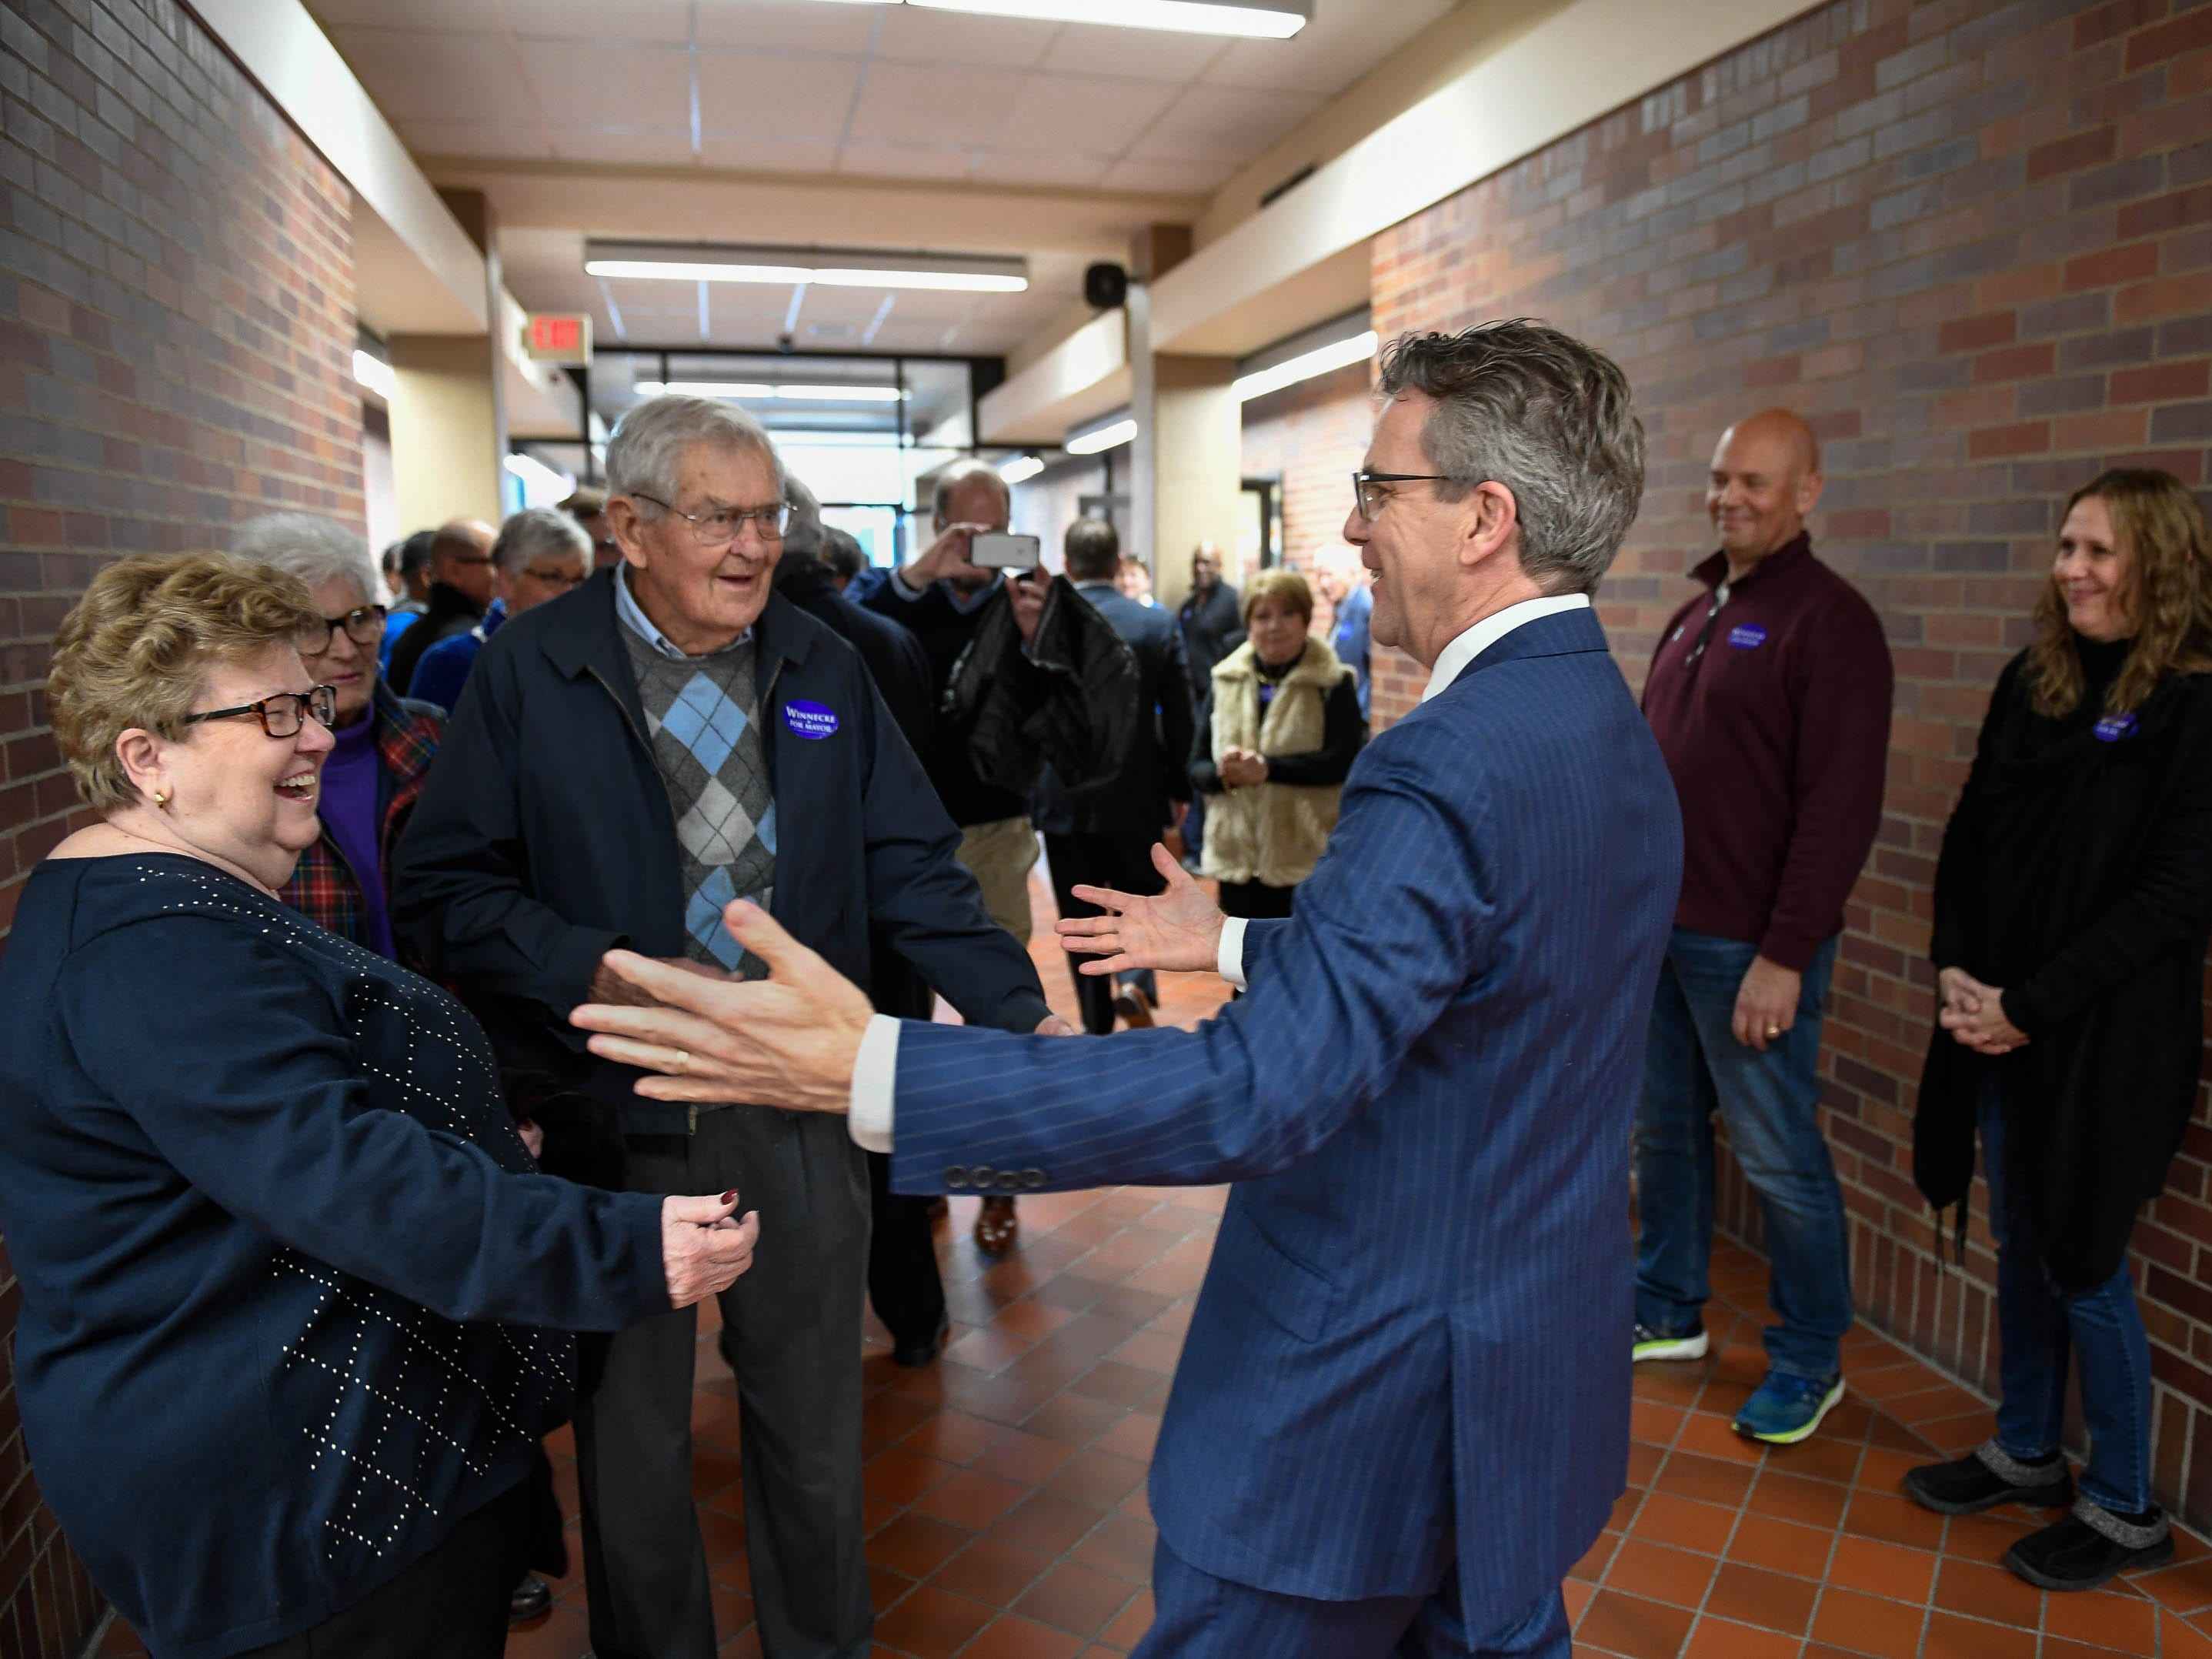 Evansville Mayor Lloyd Winnecke greets supporters as he files for re-election Wednesday at the Civic Center Election Officer, January 9, 2019.